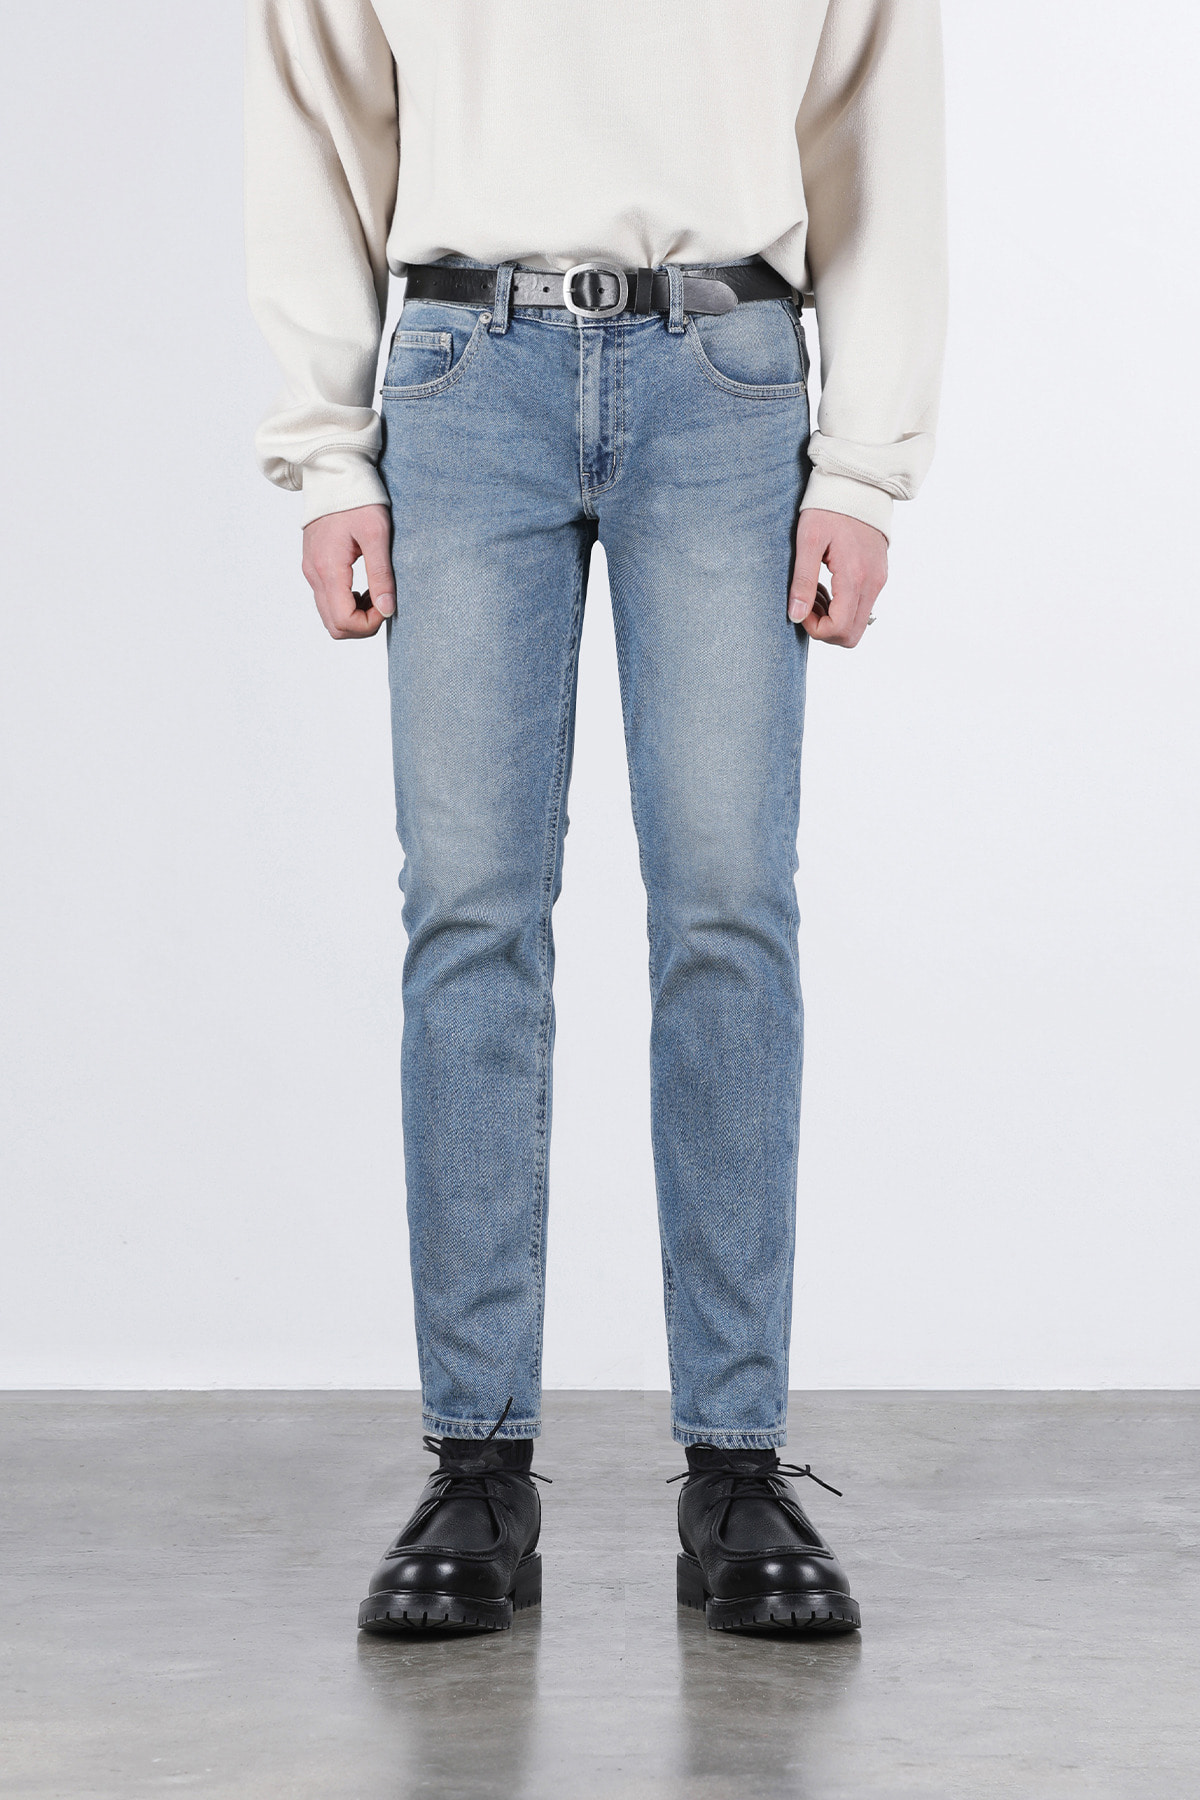 페이탈리즘 #0209 easy blue slim crop jeans